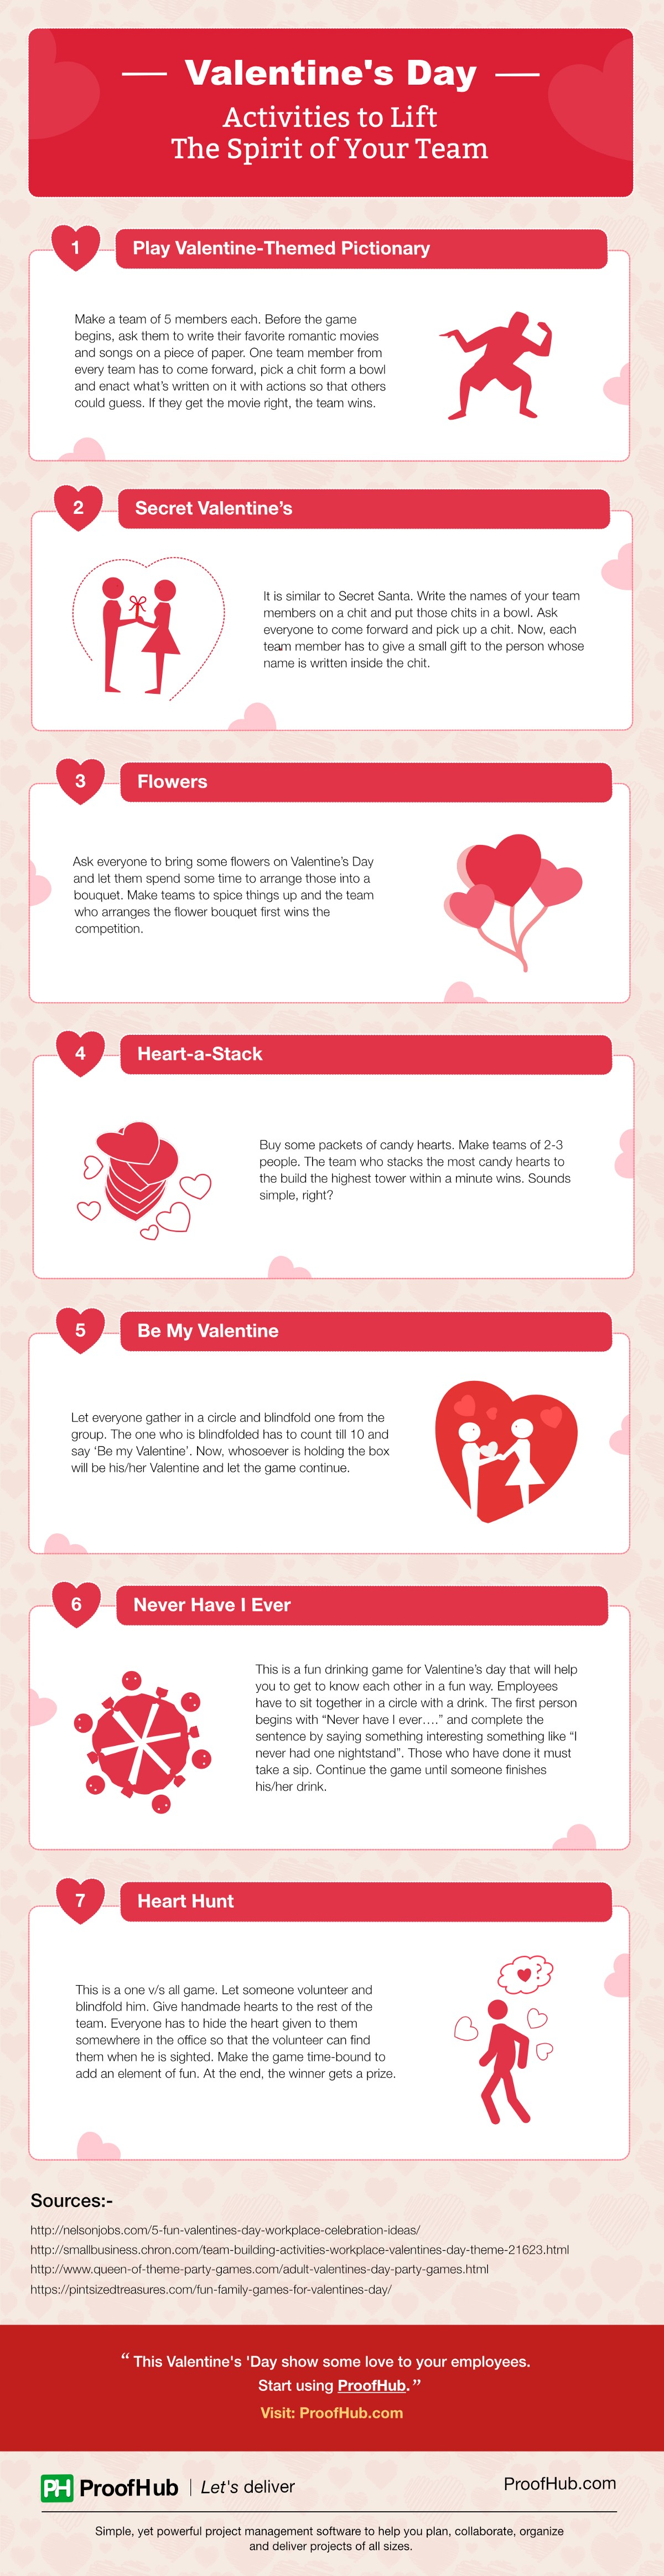 Fun Team Building Activities For Valentine S Day By Proofhub Proofhub Blog